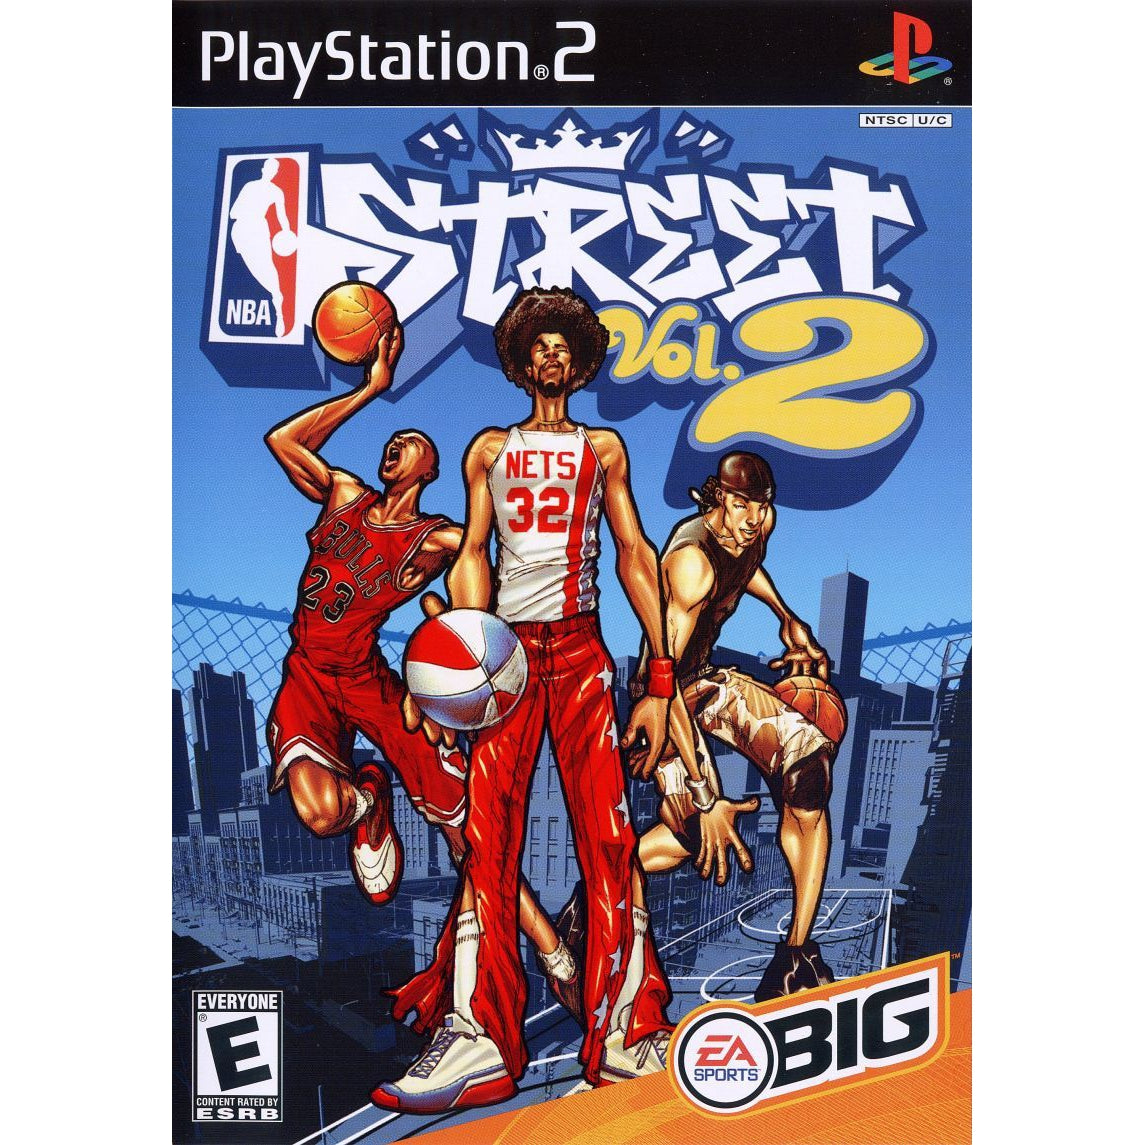 NBA Street Vol. 2 - PlayStation 2 (PS2) Game Complete - YourGamingShop.com - Buy, Sell, Trade Video Games Online. 120 Day Warranty. Satisfaction Guaranteed.